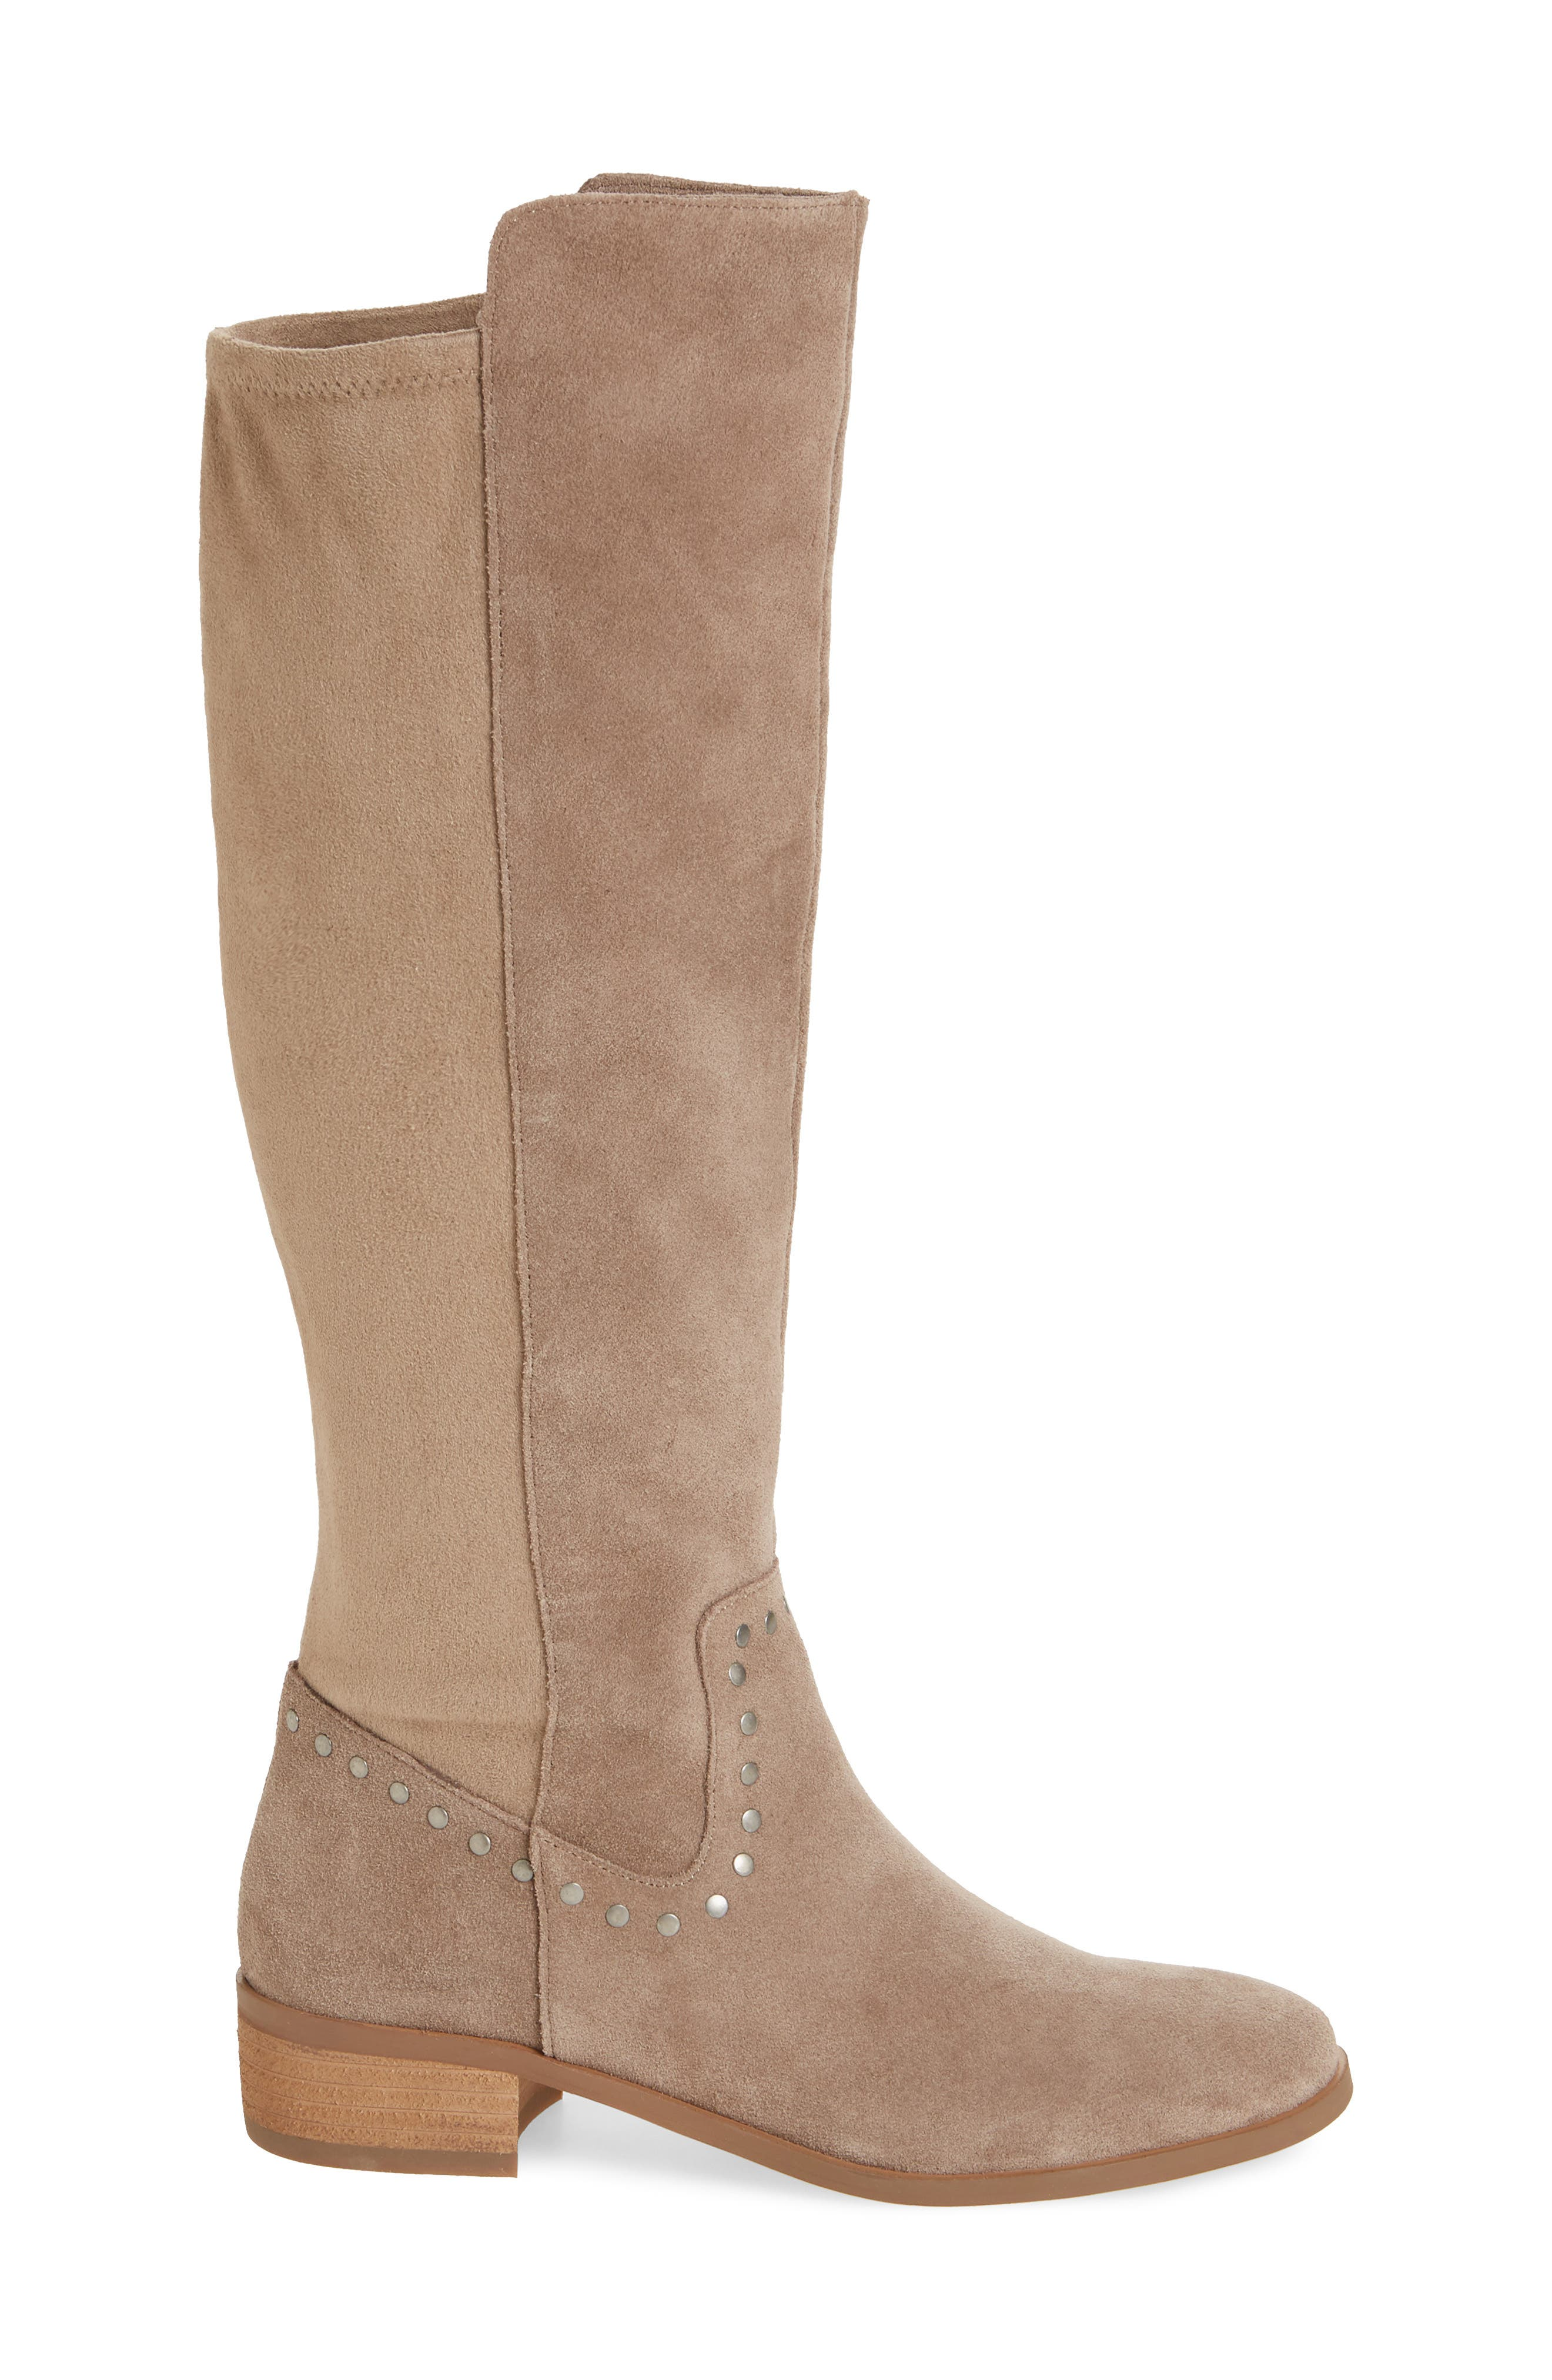 Calvenia Knee High Boot,                             Alternate thumbnail 3, color,                             FALL TAUPE SUEDE